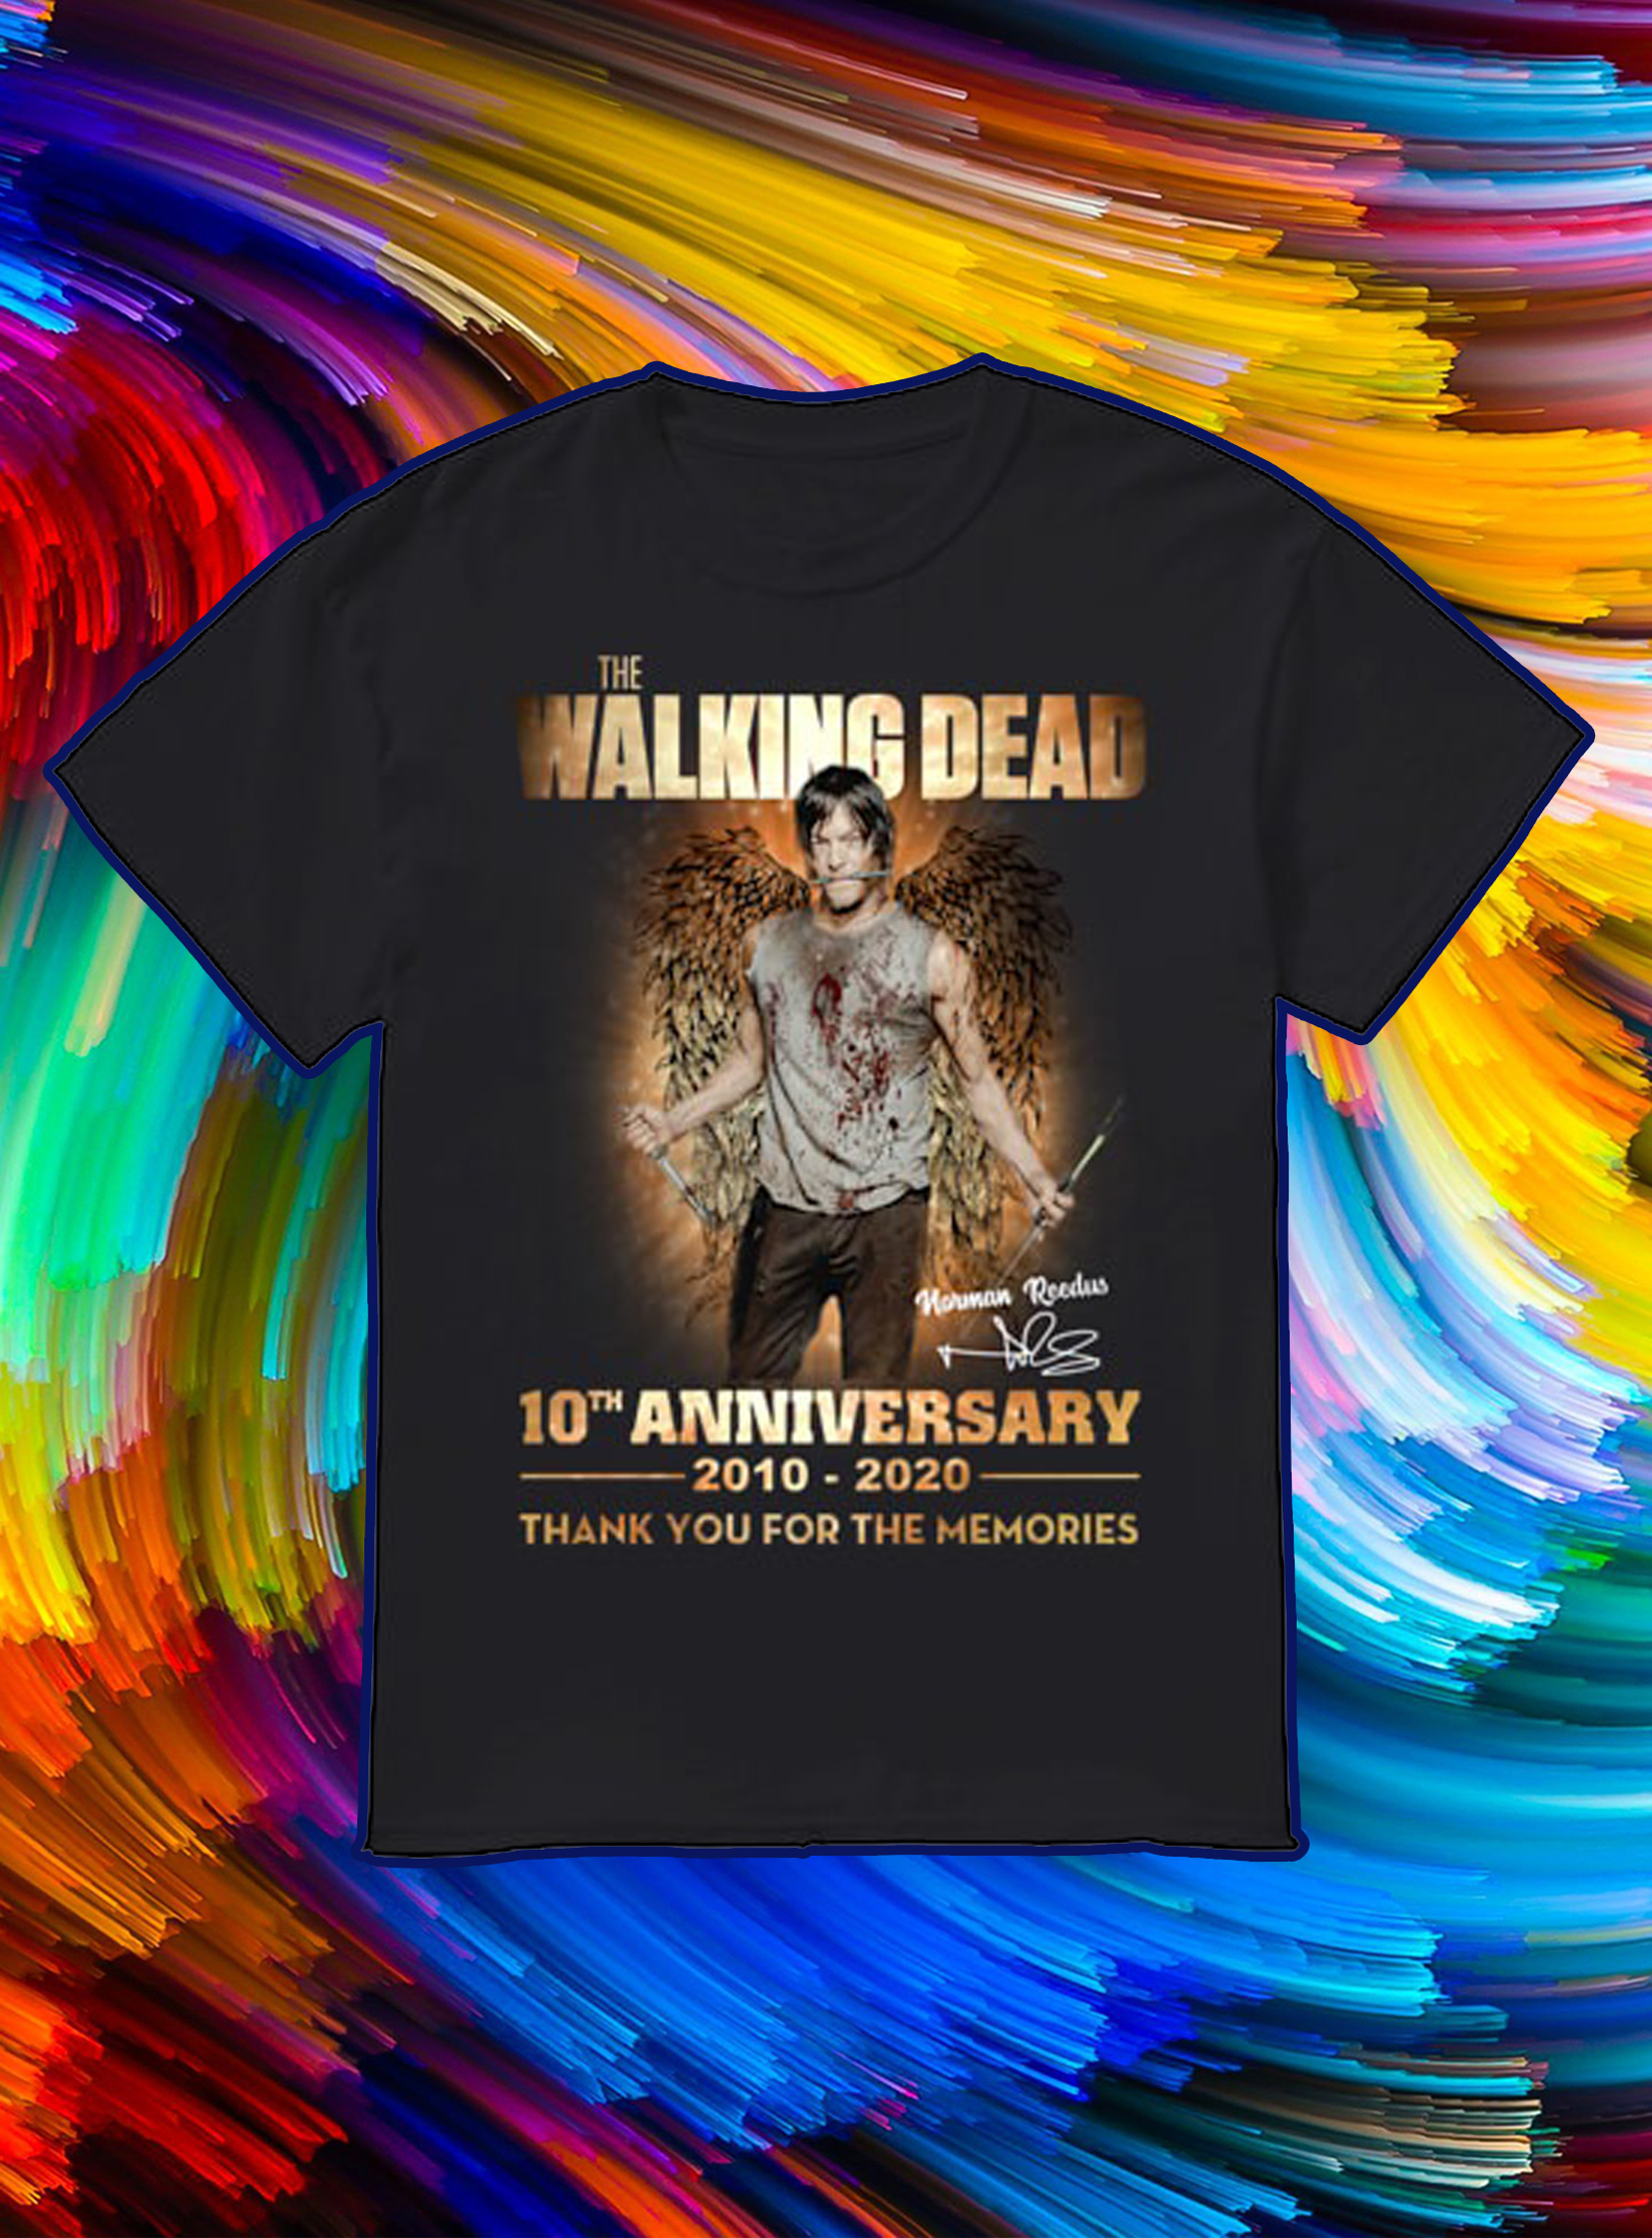 The walking dead 10th anniversary 2010 2020 thank you for the memories shirt